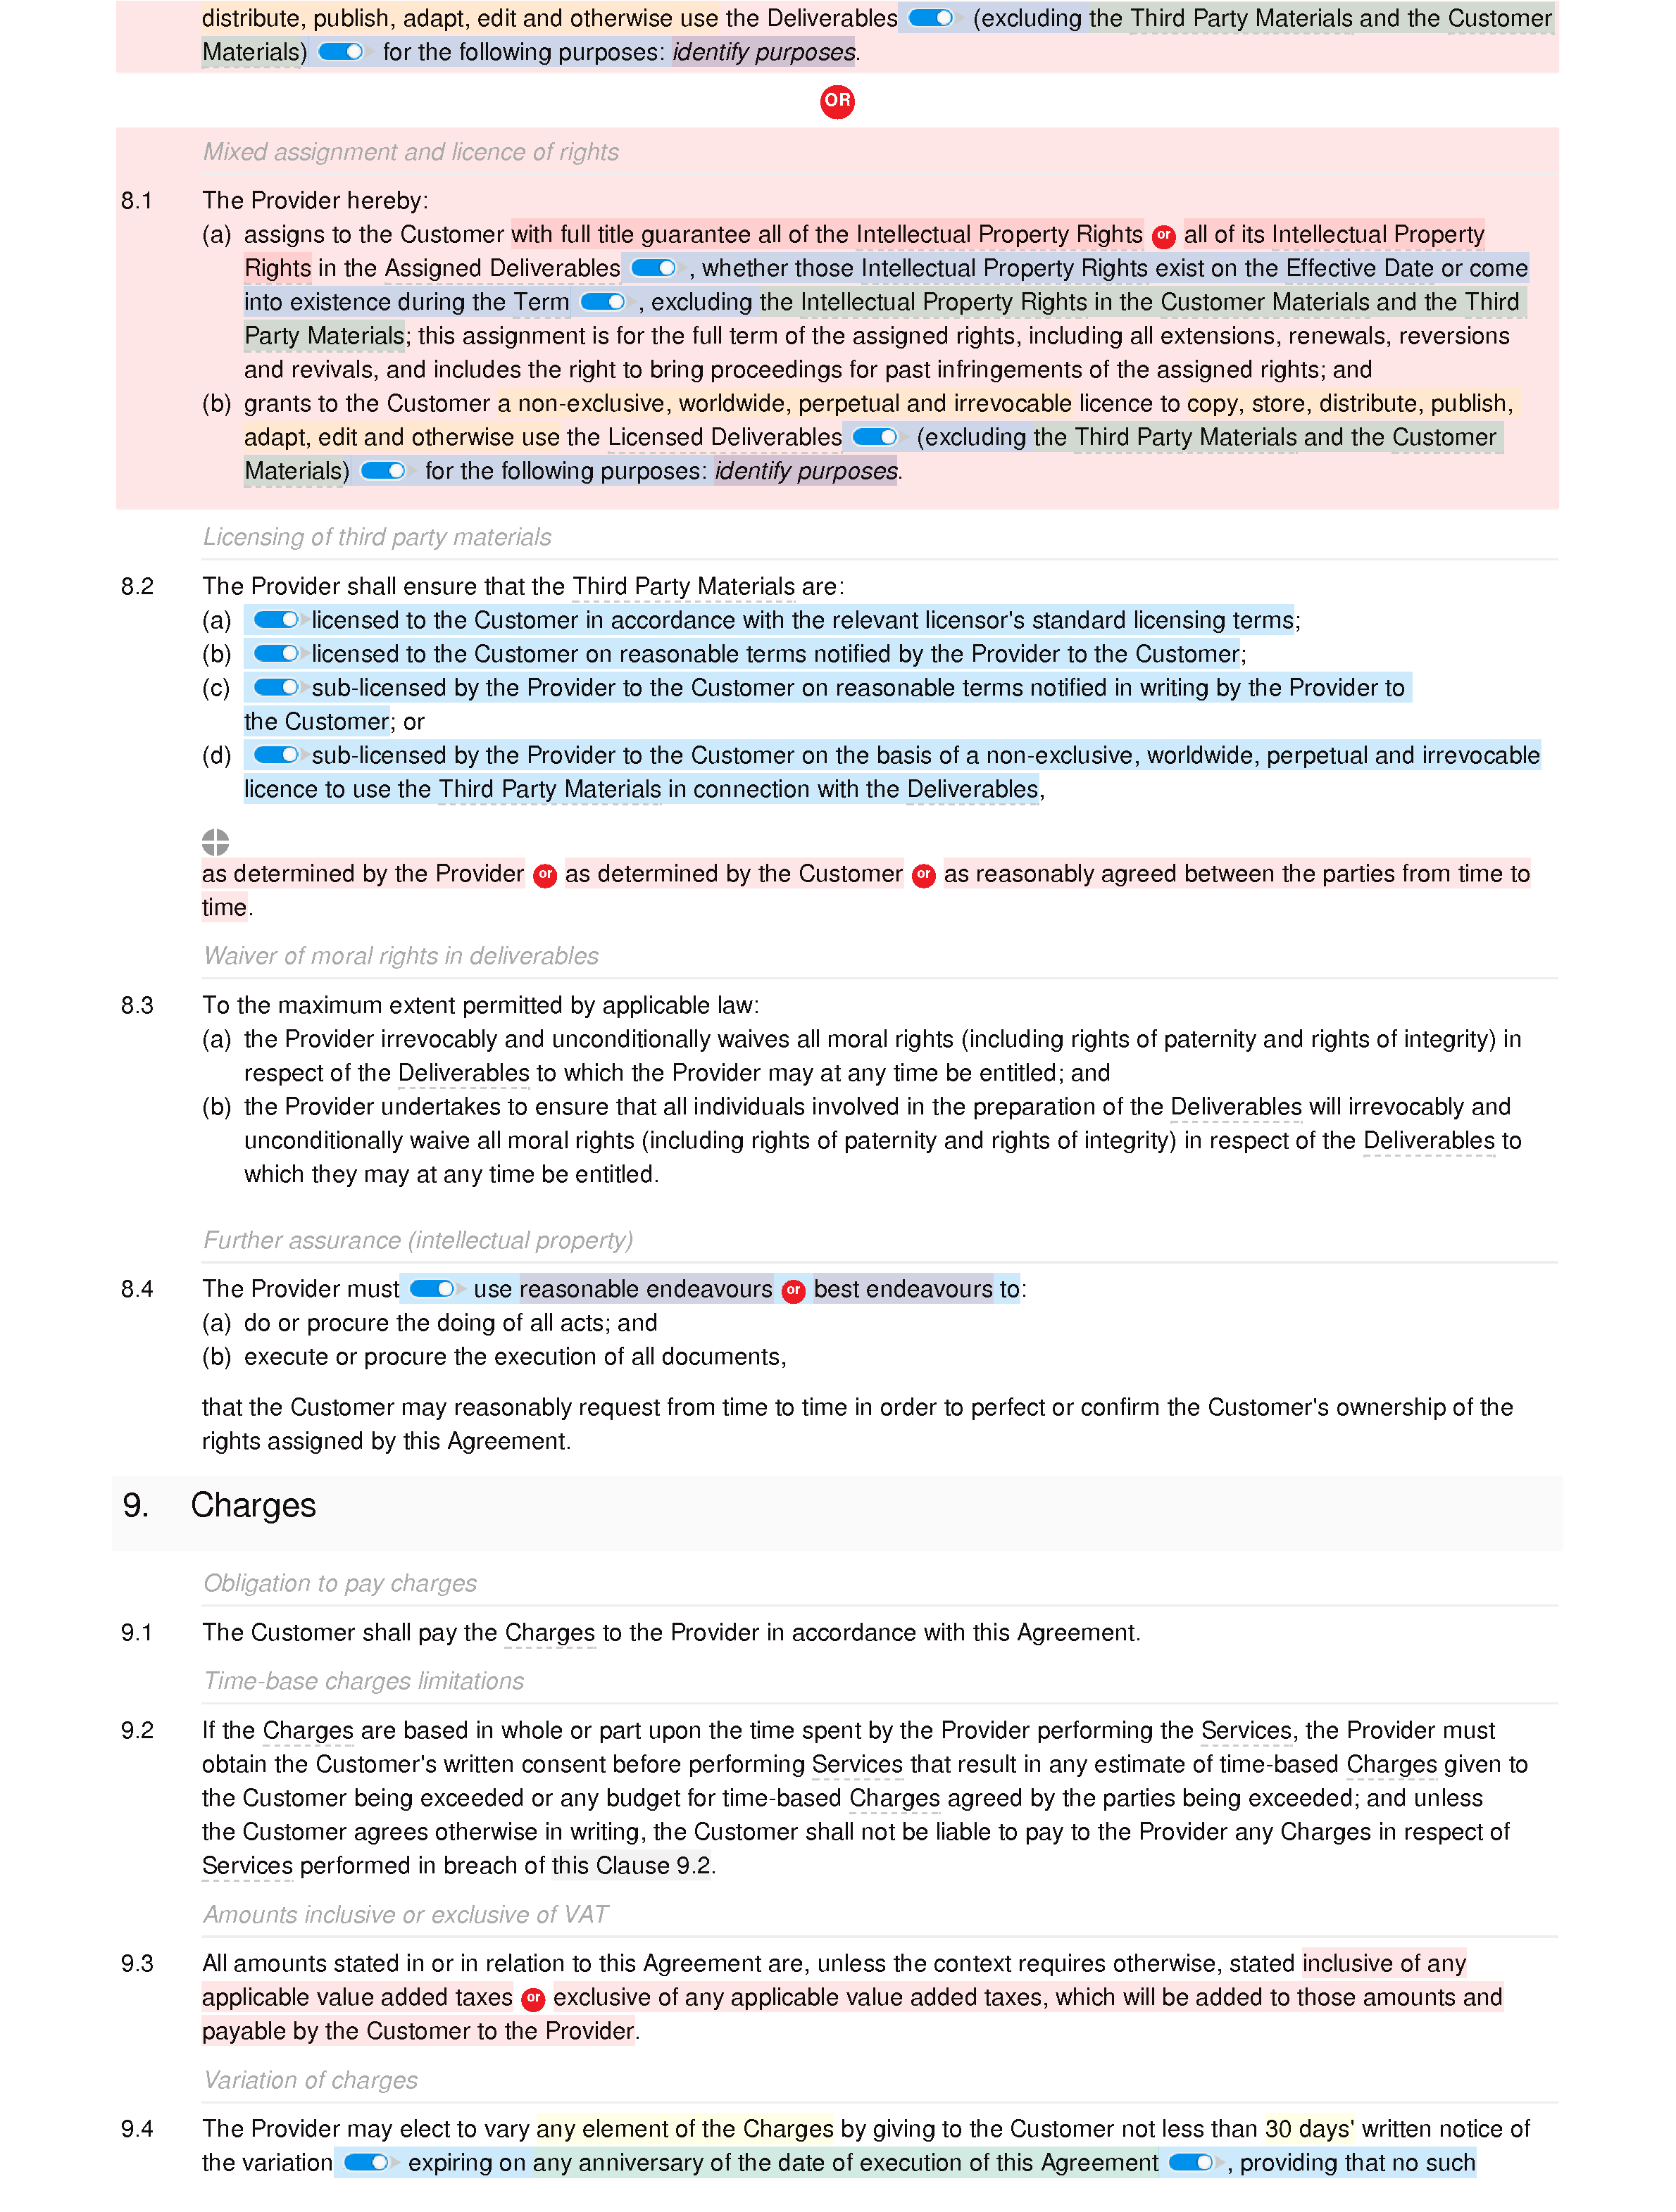 Services agreement (standard) document editor preview